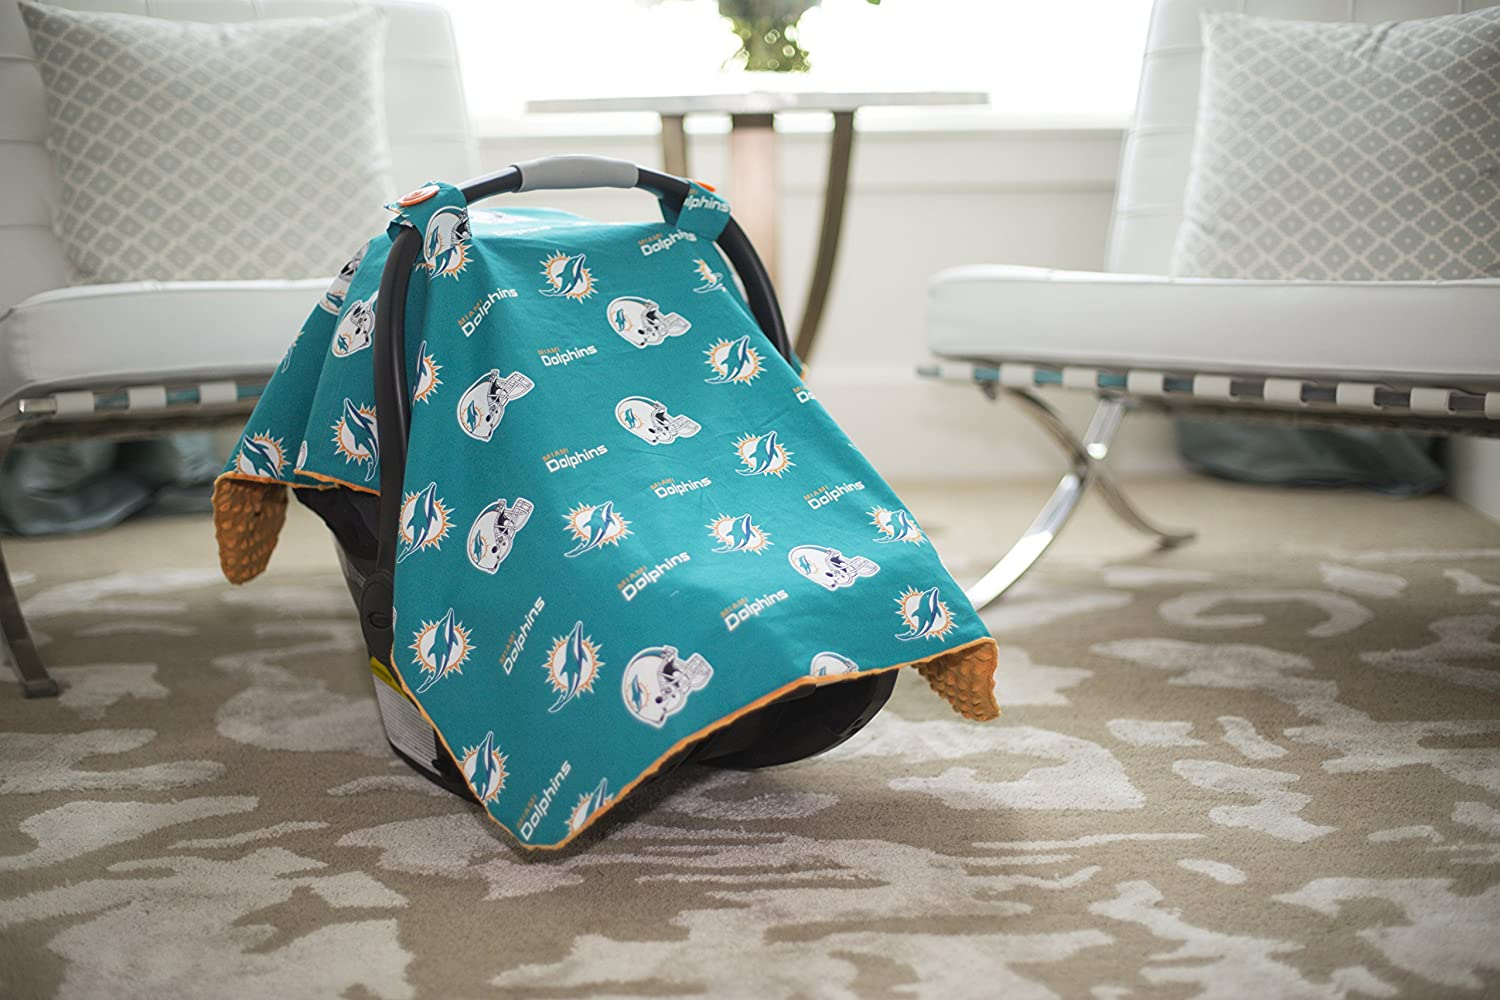 Stupendous Carseat Canopy Nfl Miami Dolphins Baby Infant Car Seat Cover Pabps2019 Chair Design Images Pabps2019Com